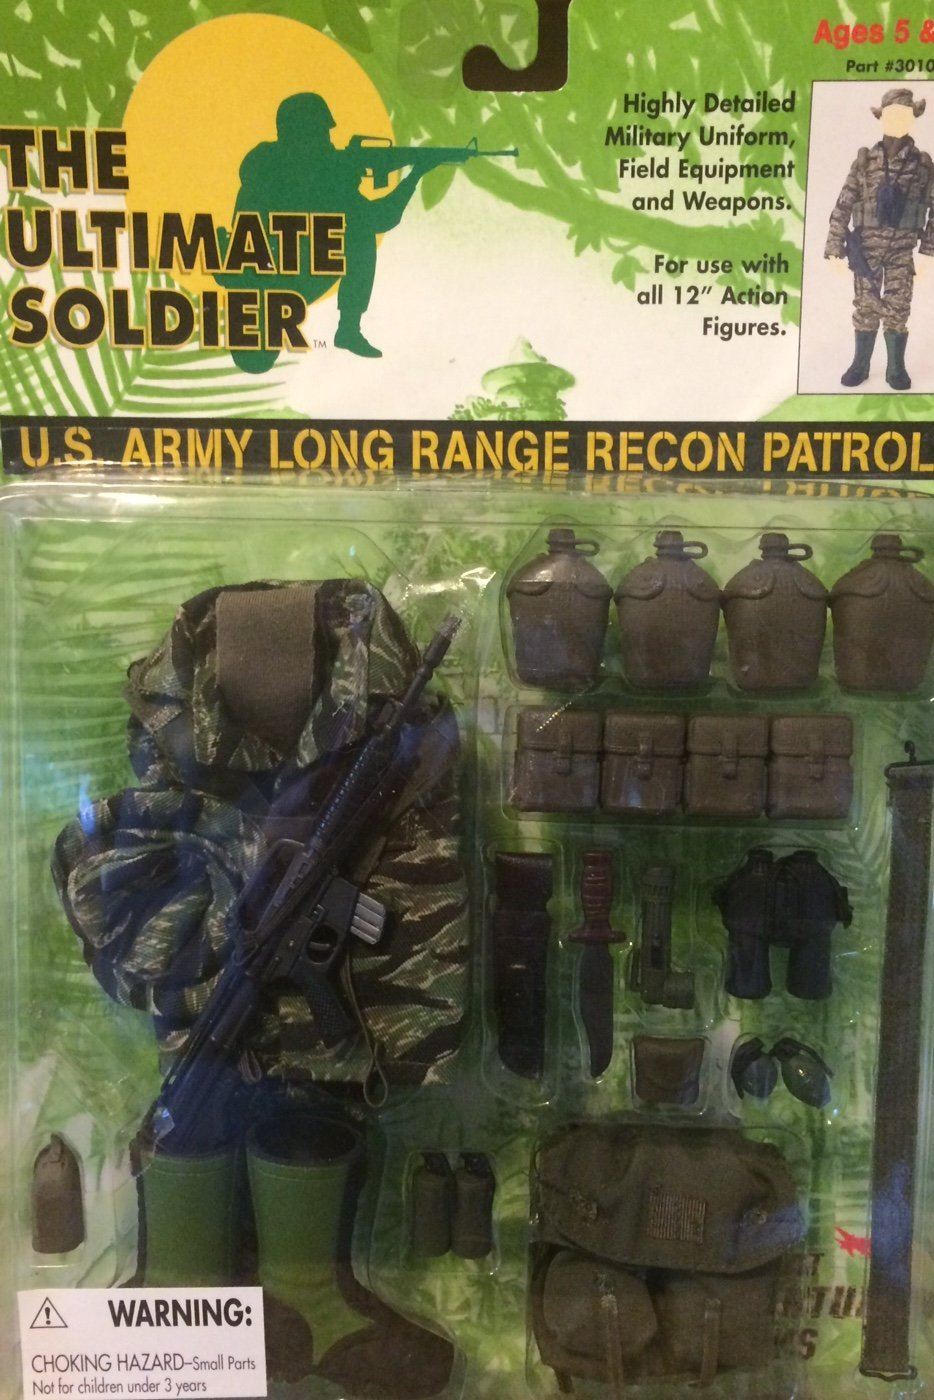 The Ultimate Soldier U.S. Army Long Range Recon Patrol